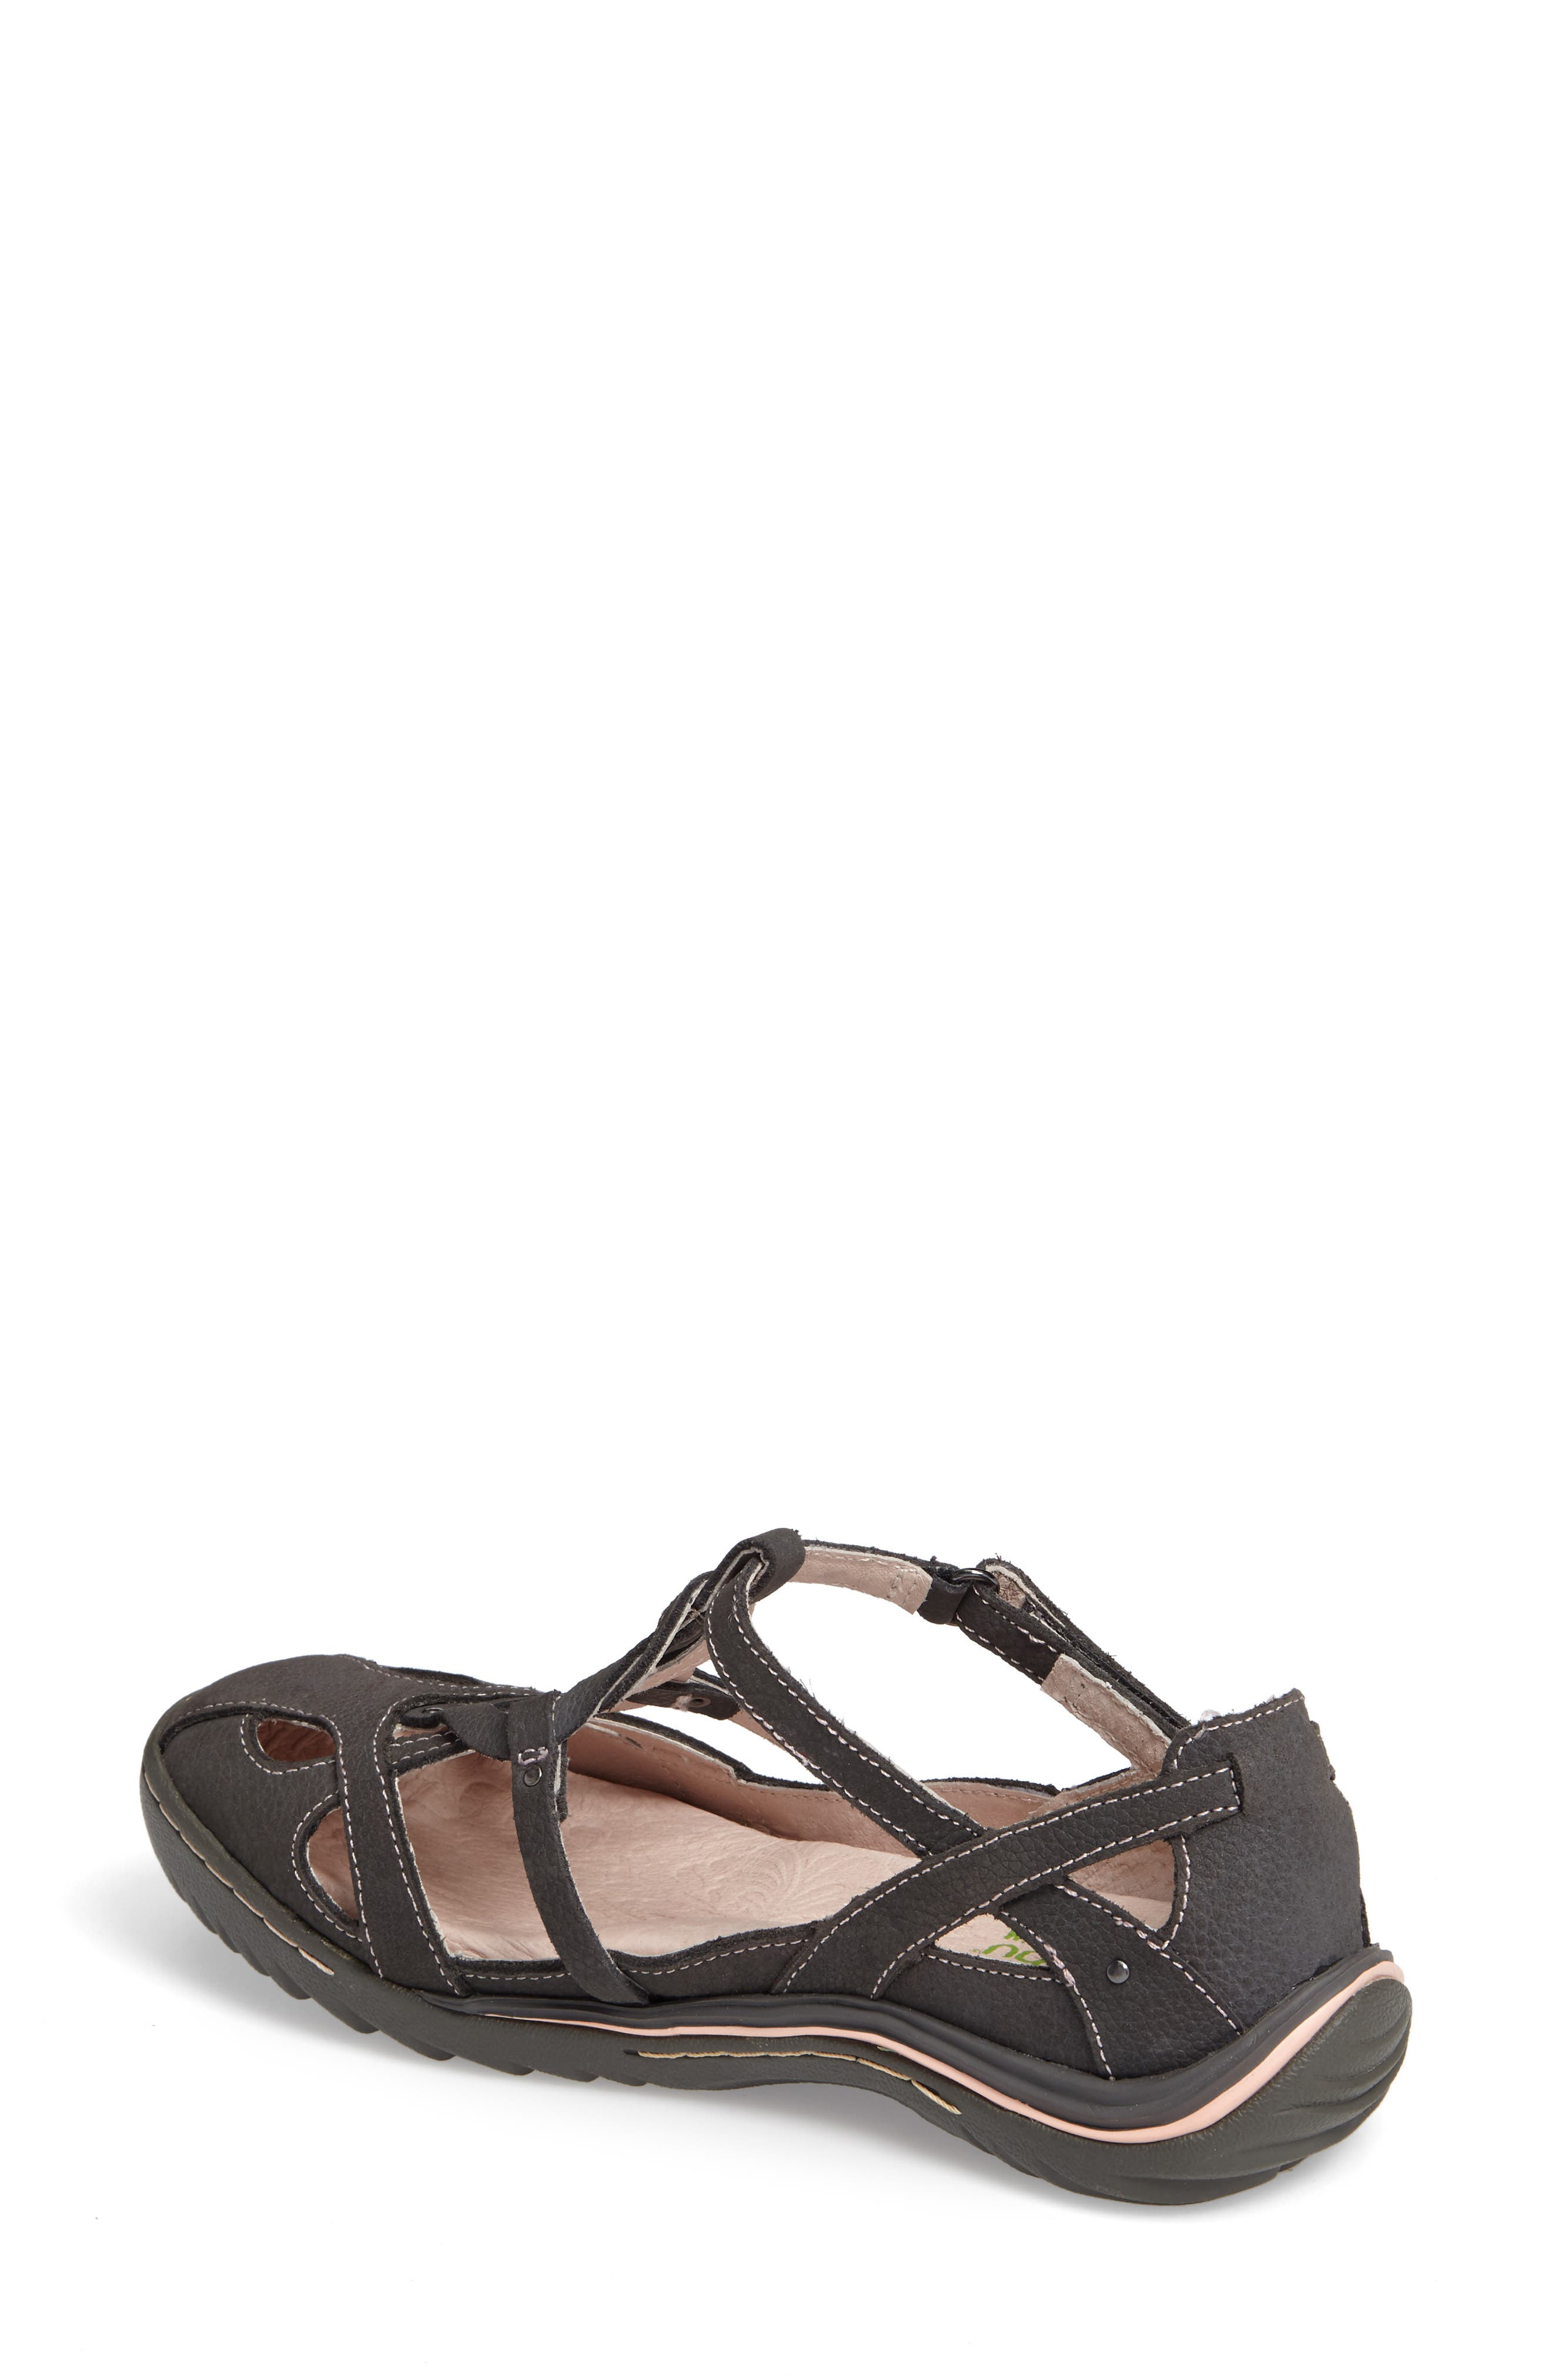 Spain Studded Strappy Sneaker,                             Alternate thumbnail 2, color,                             Grey